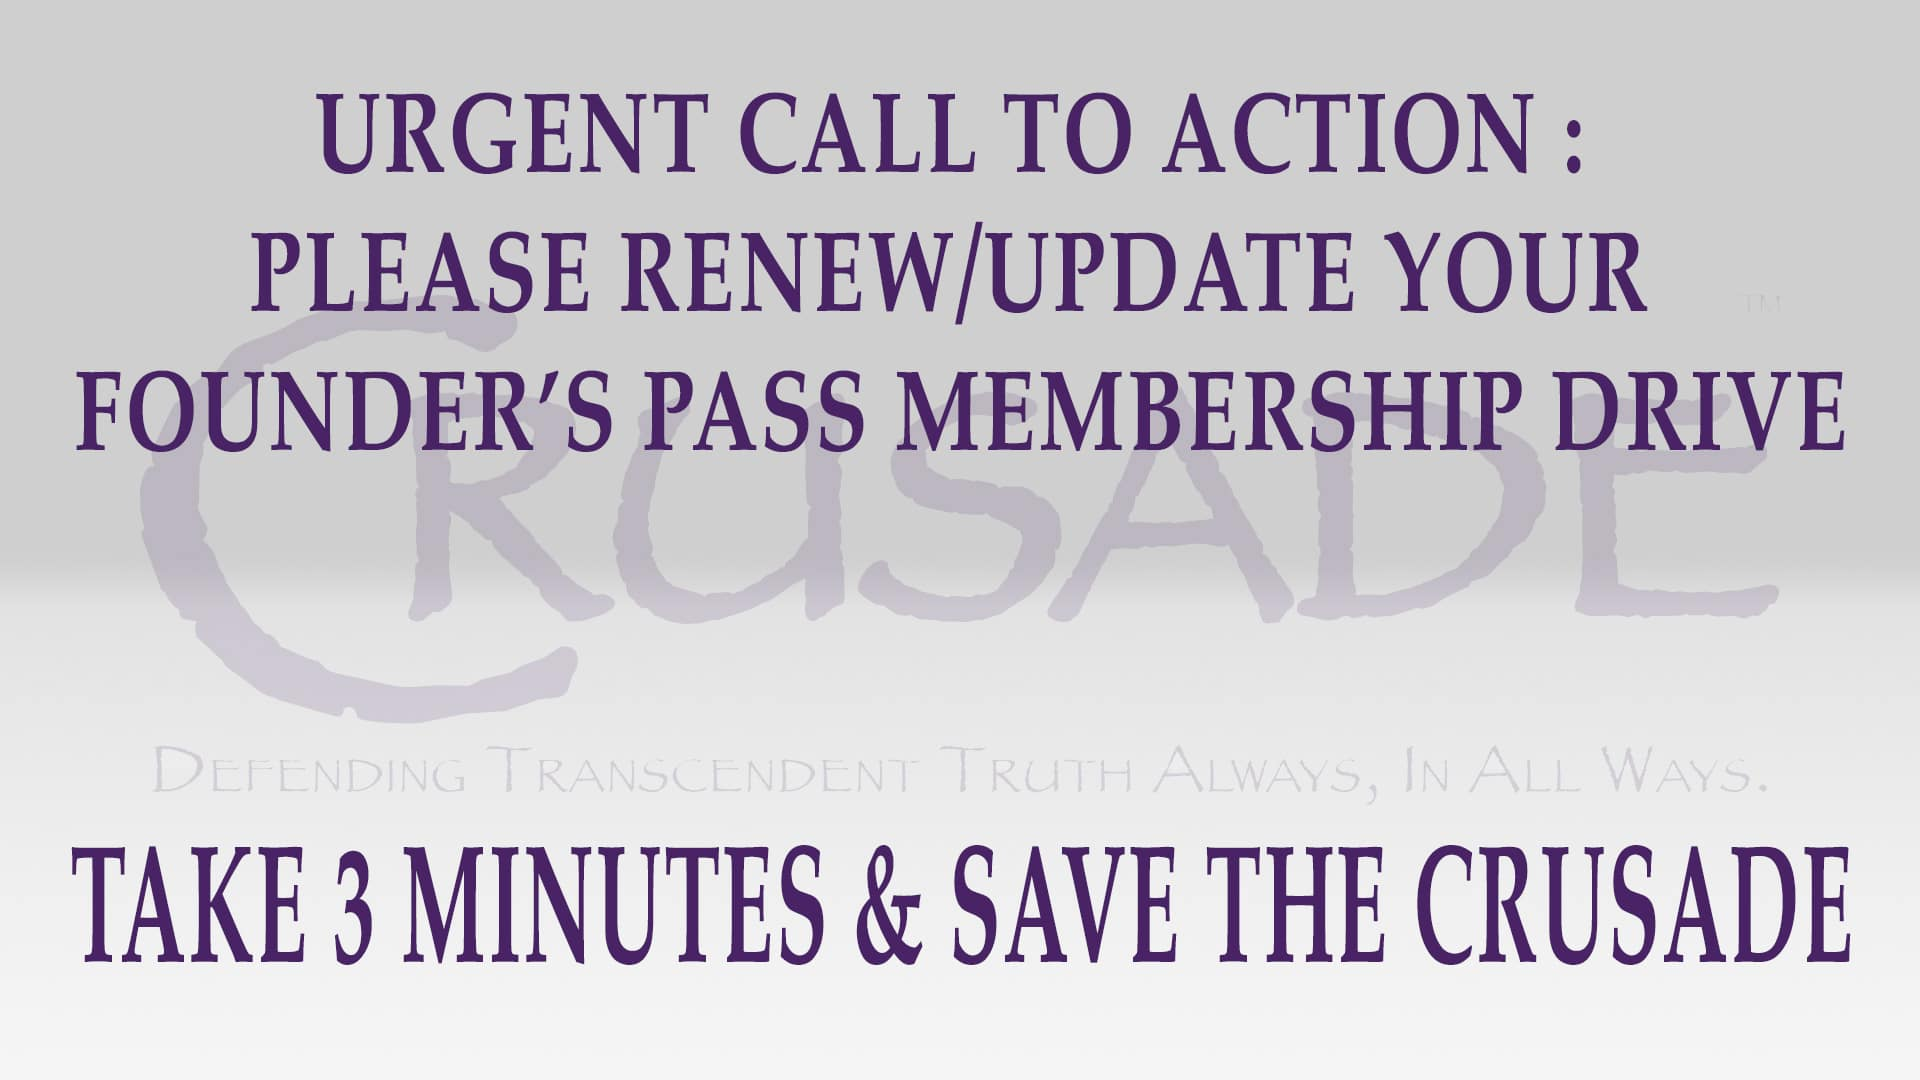 Renew Update Your Founder's Pass Membership Today